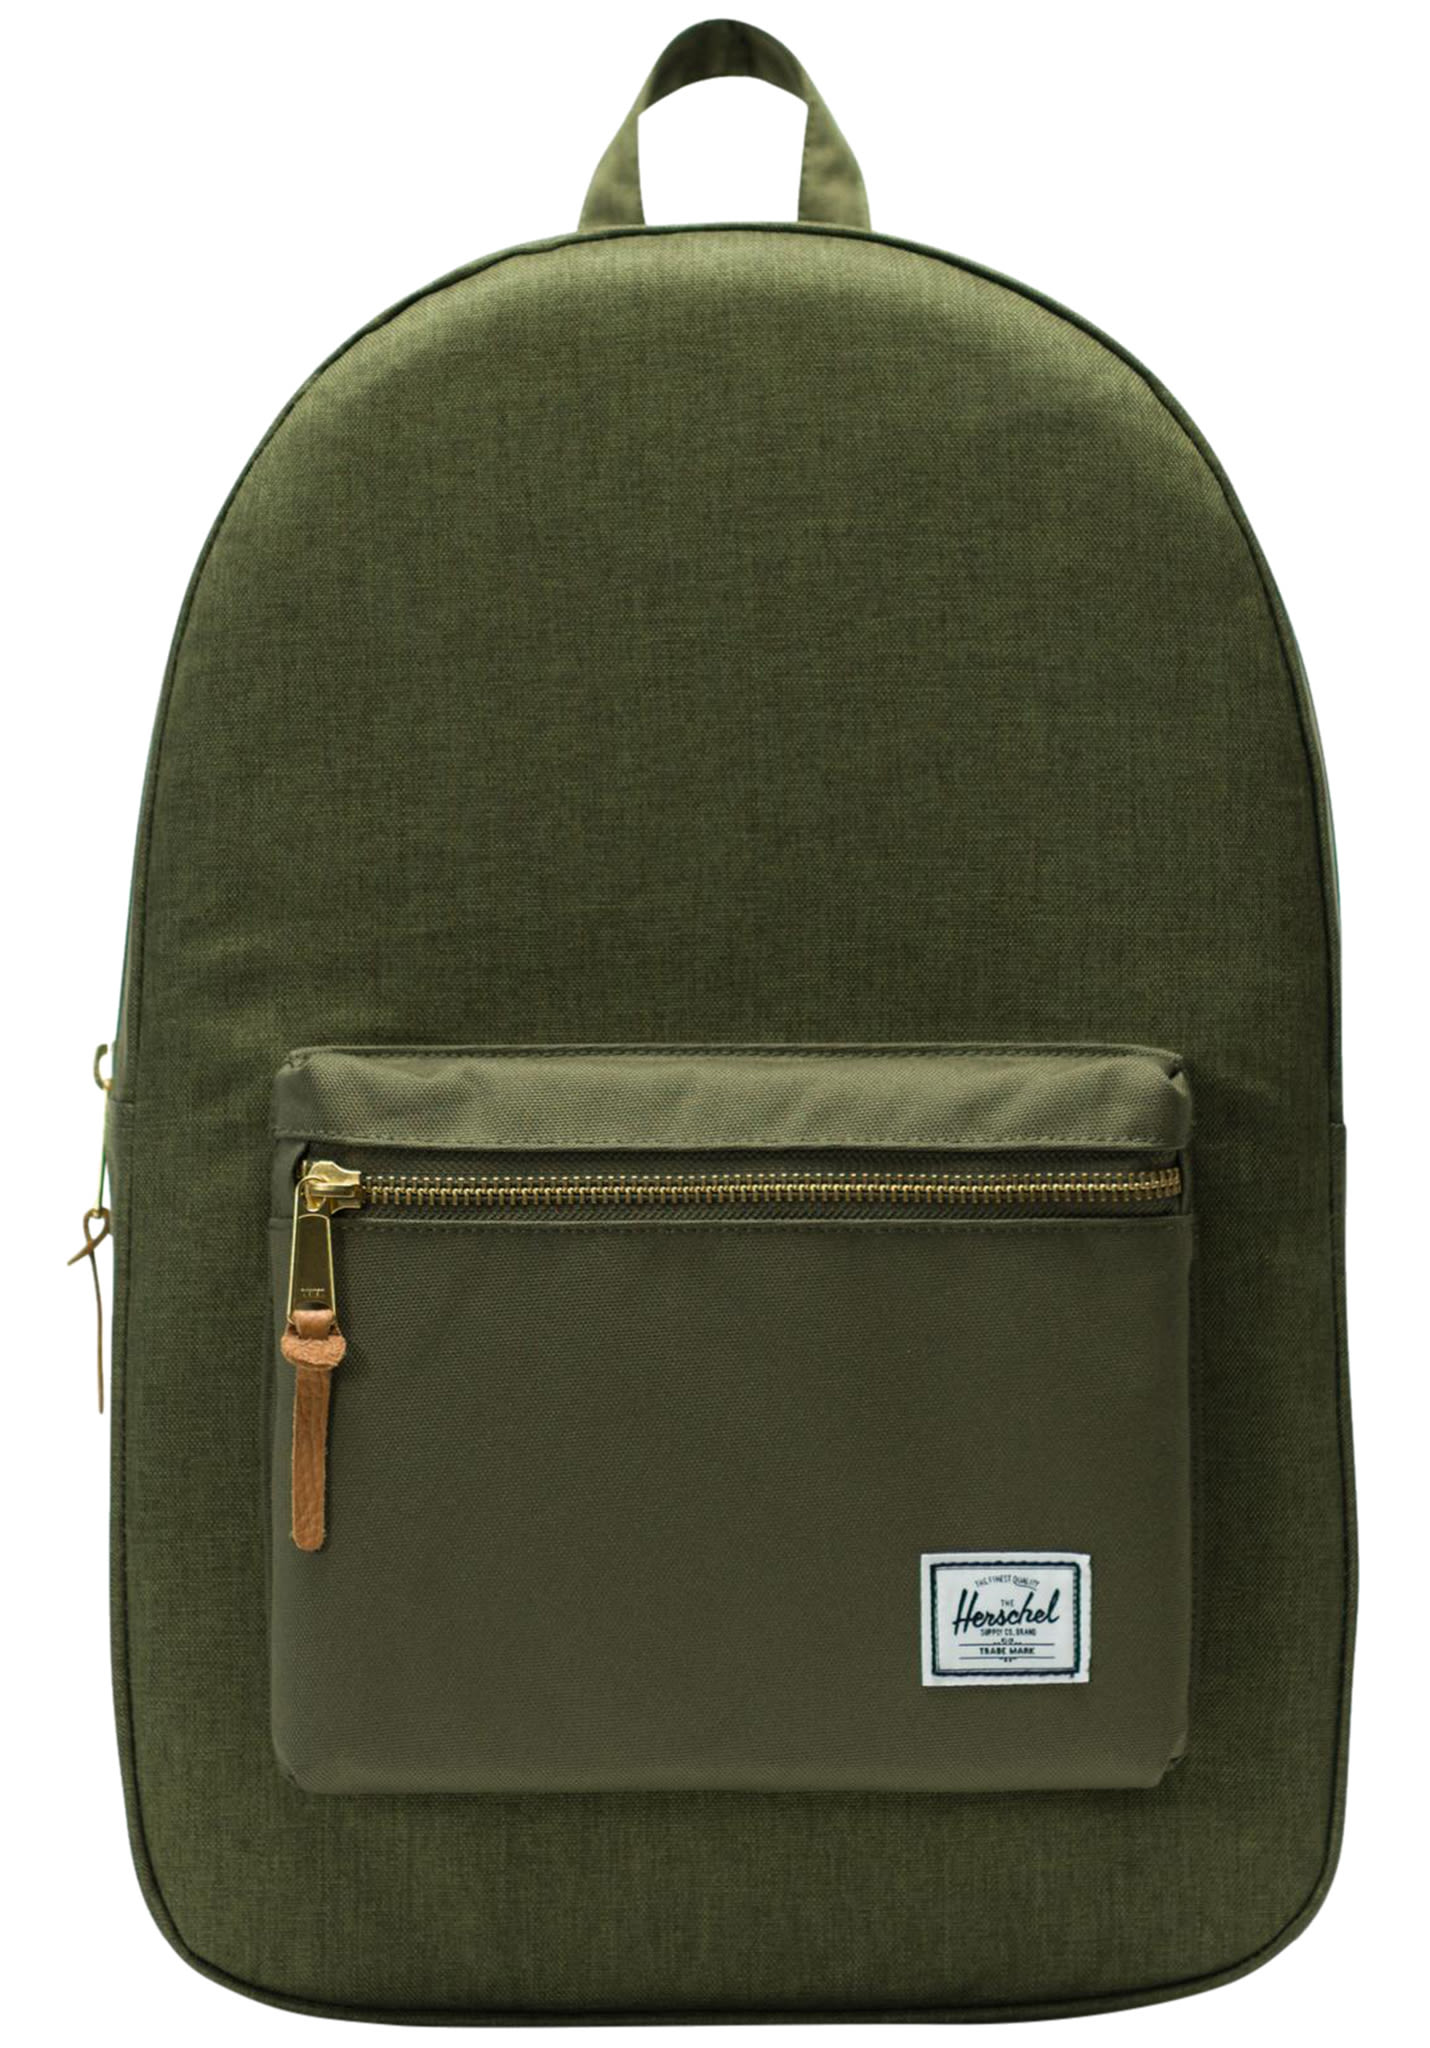 71282e925d2 Herschel SUPPLY CO Settlement 23L - Backpack - Green - Planet Sports